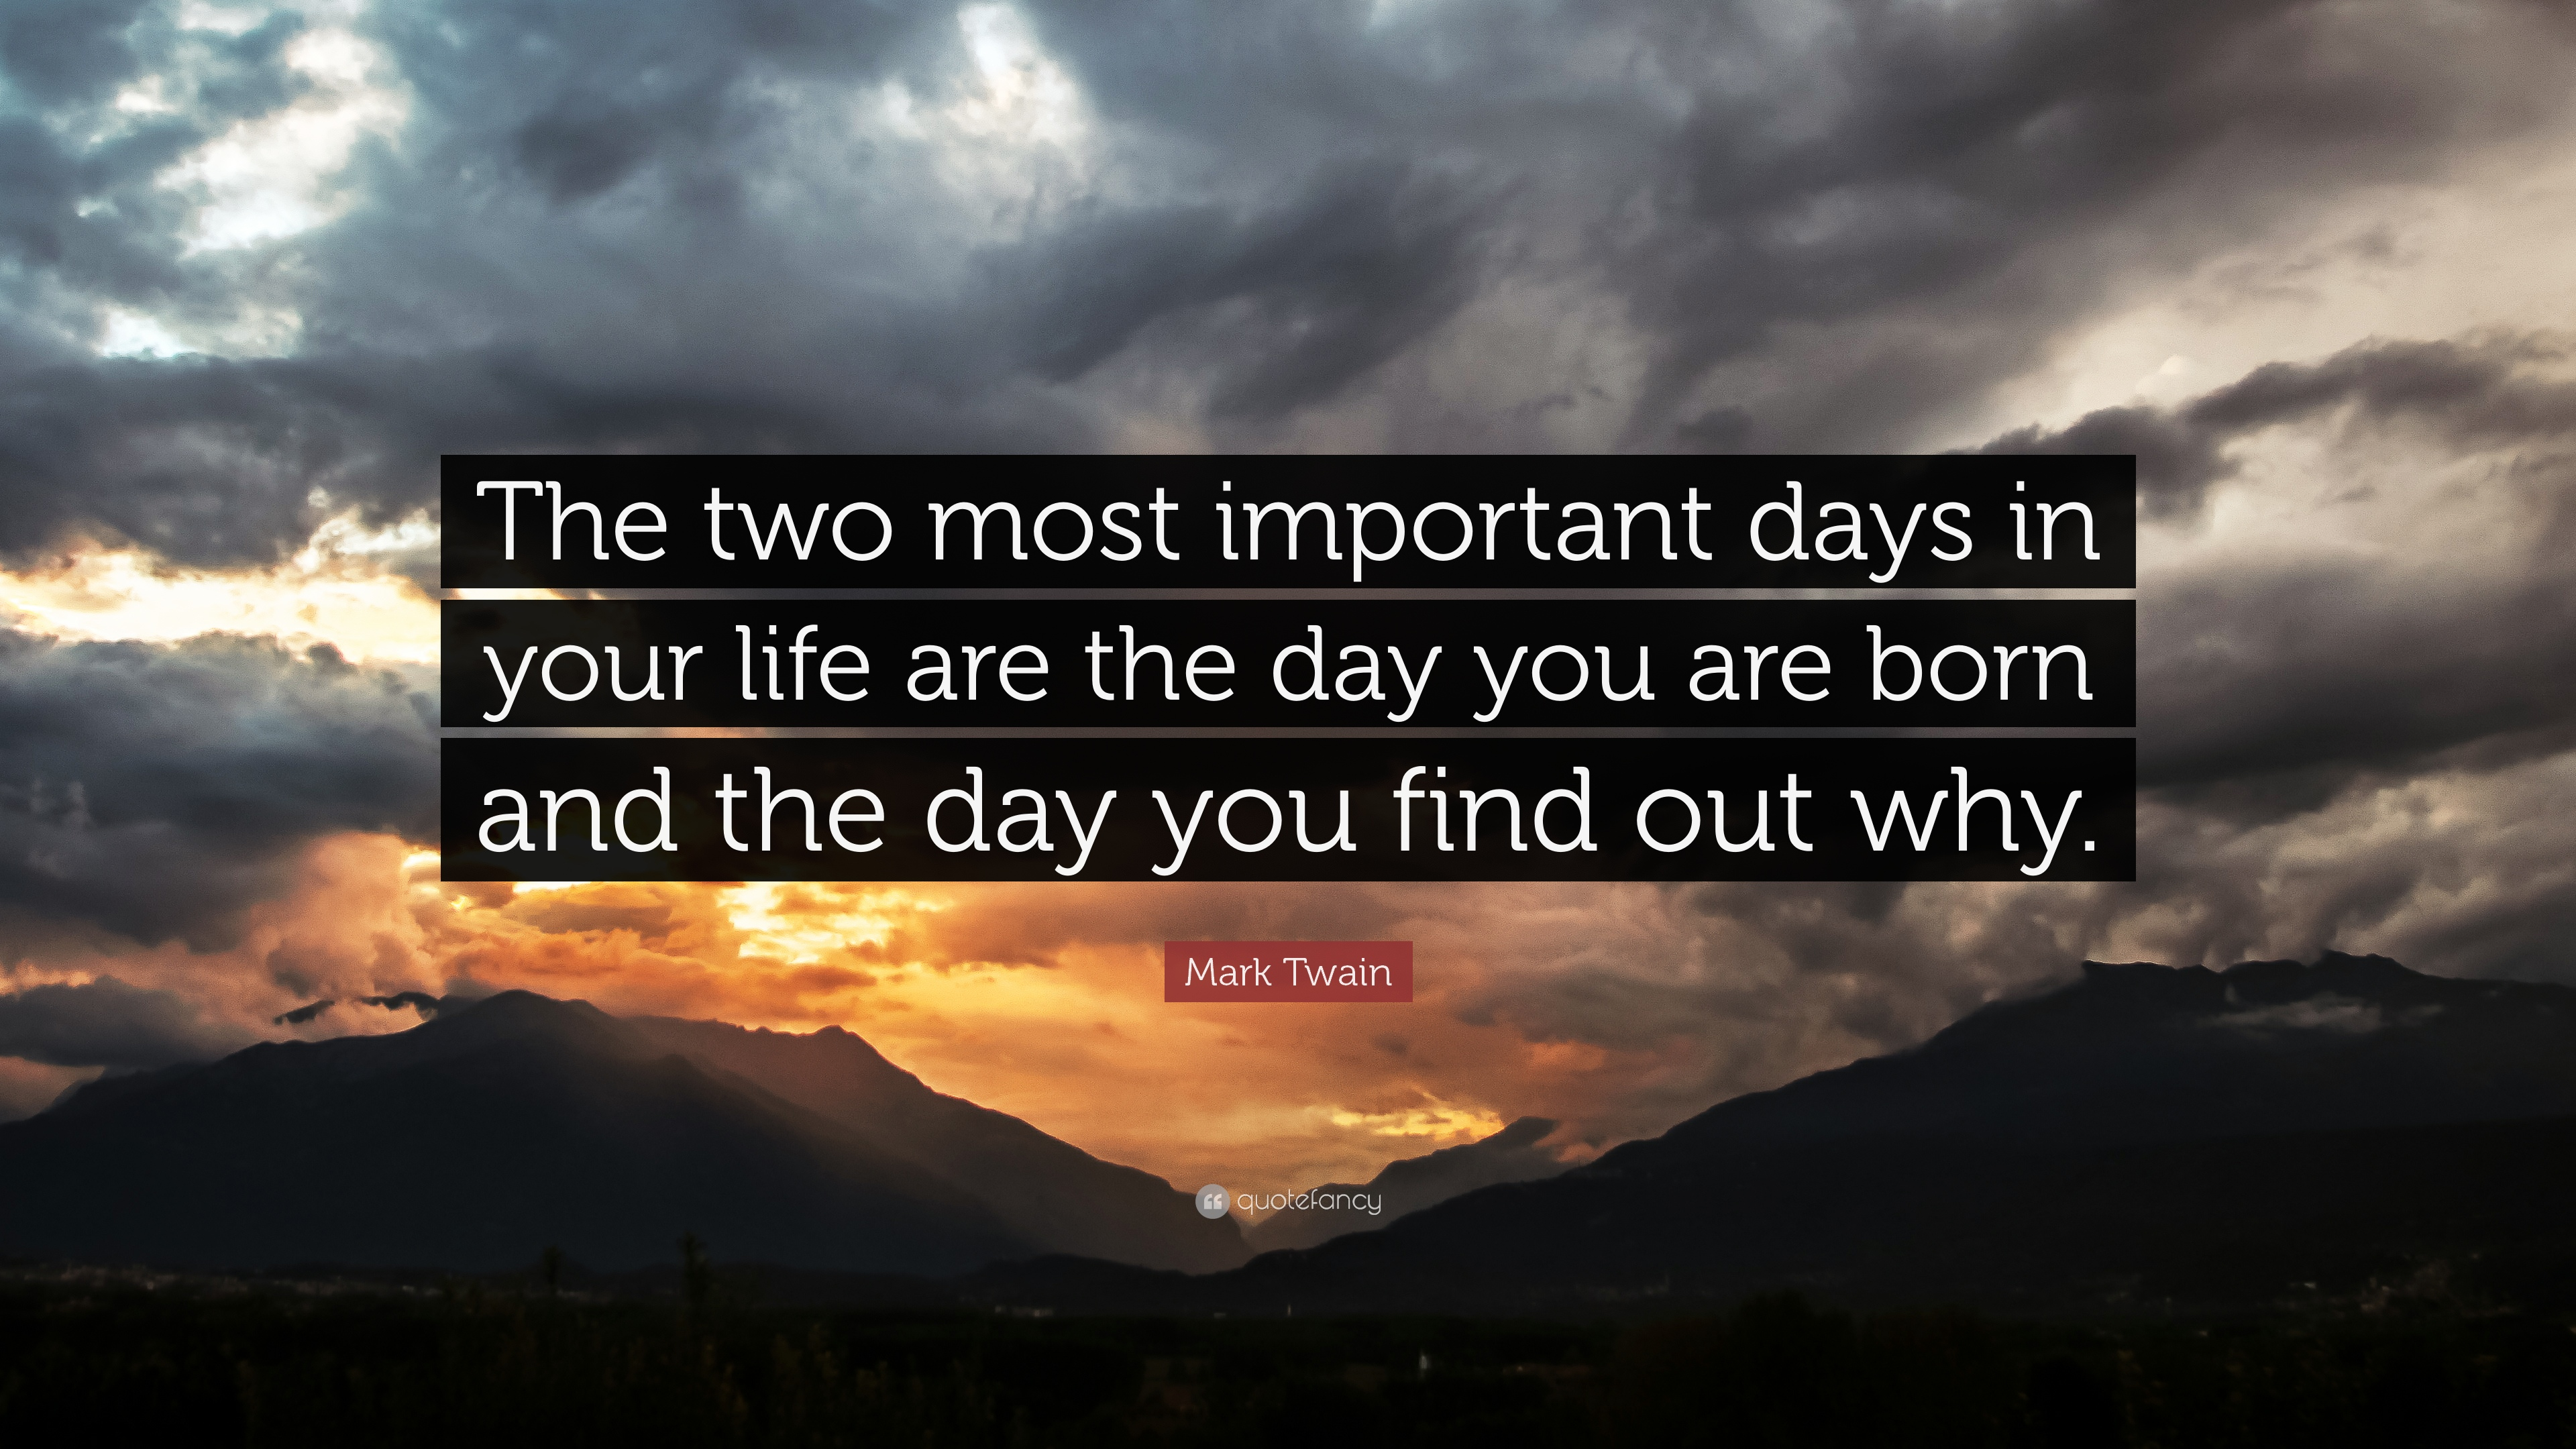 essay on mark twain mark twain quote the two most important days  mark twain quote the two most important days in your life are mark twain quote the